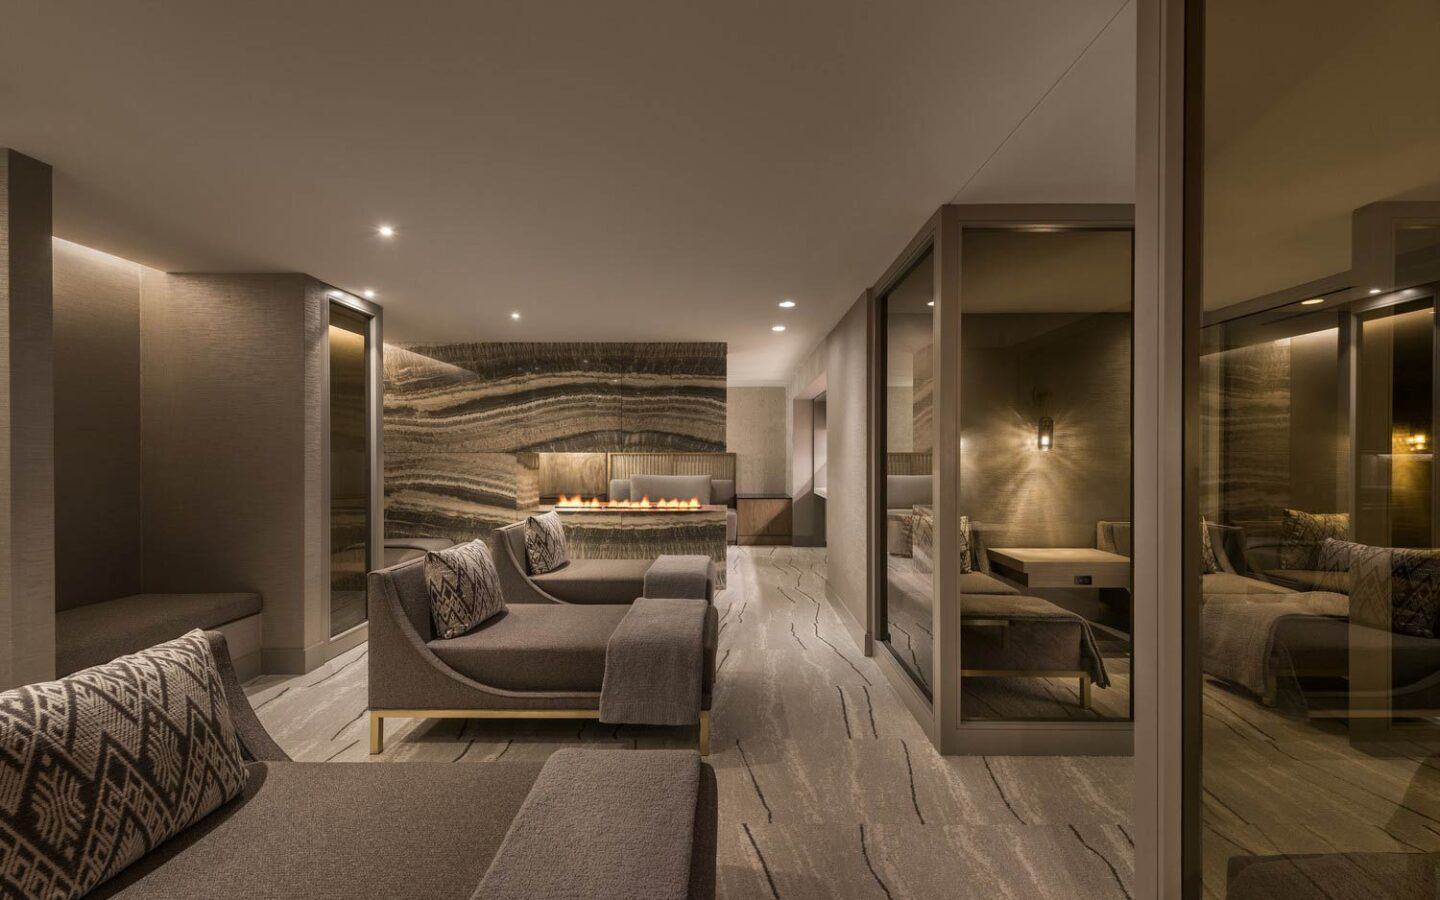 a row of daybeds in a comfortable and dimly lit spa post-treatment room